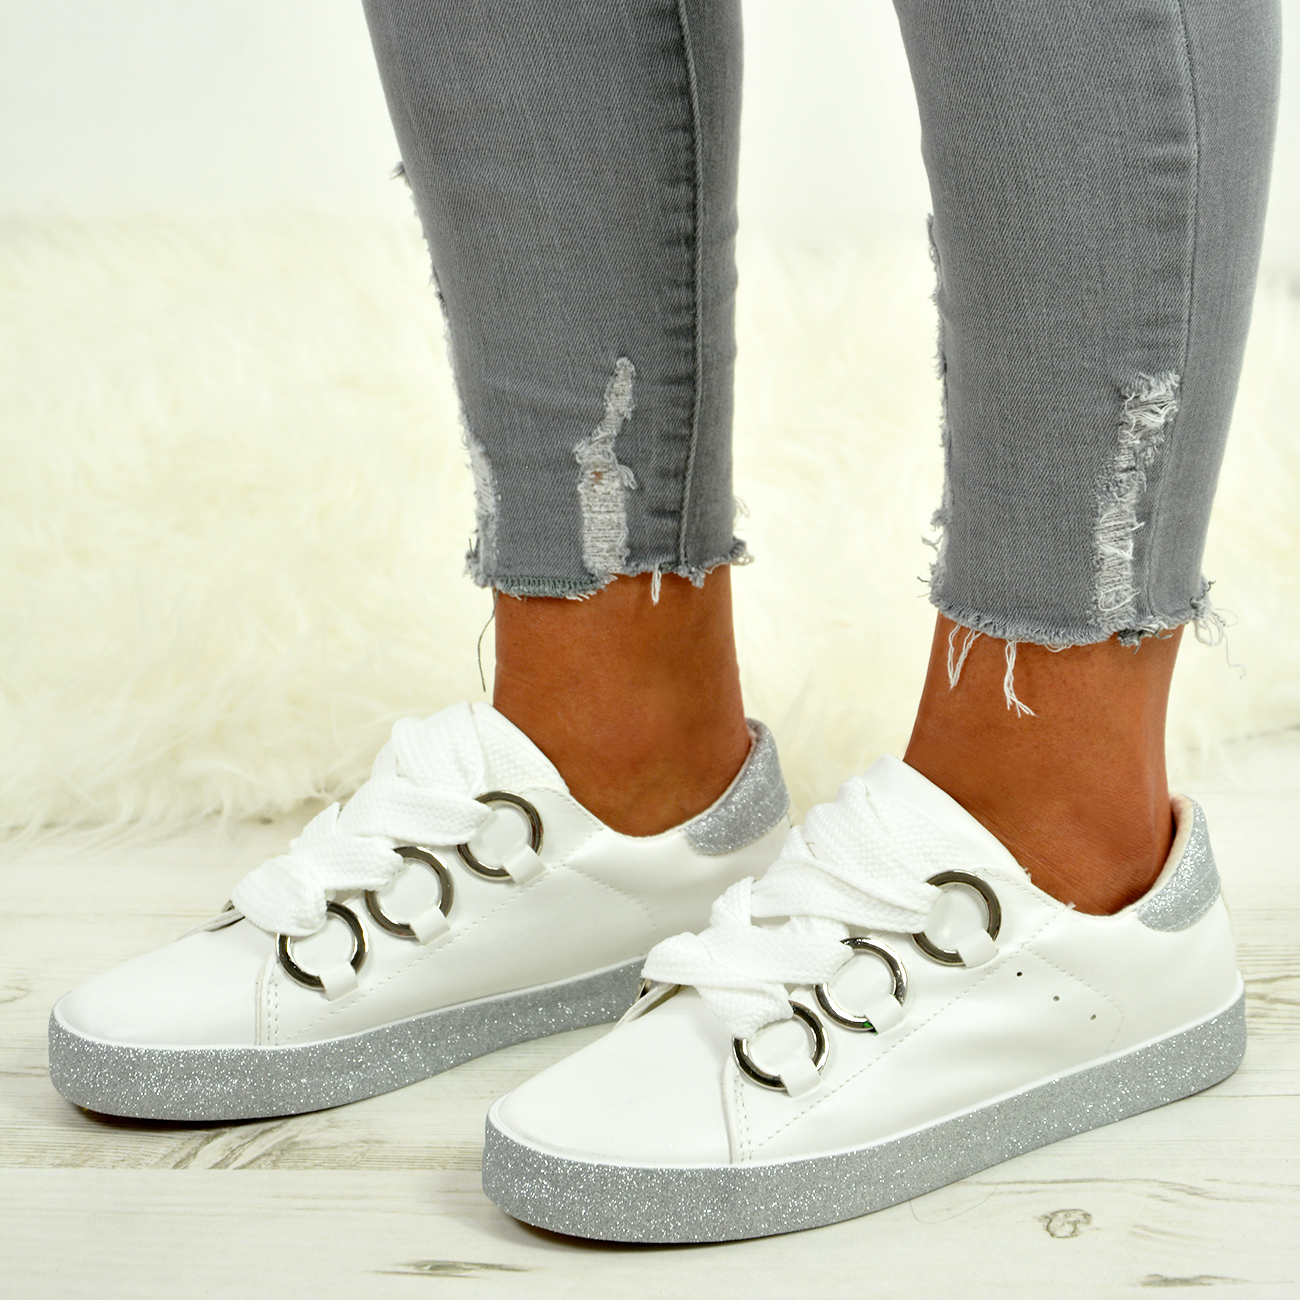 LADIES-WOMENS-GLITTER-SNEAKERS-SPARKLE-TRAINERS-LACE-UP-PLIMSOLL-PUMPS-SHOES thumbnail 30